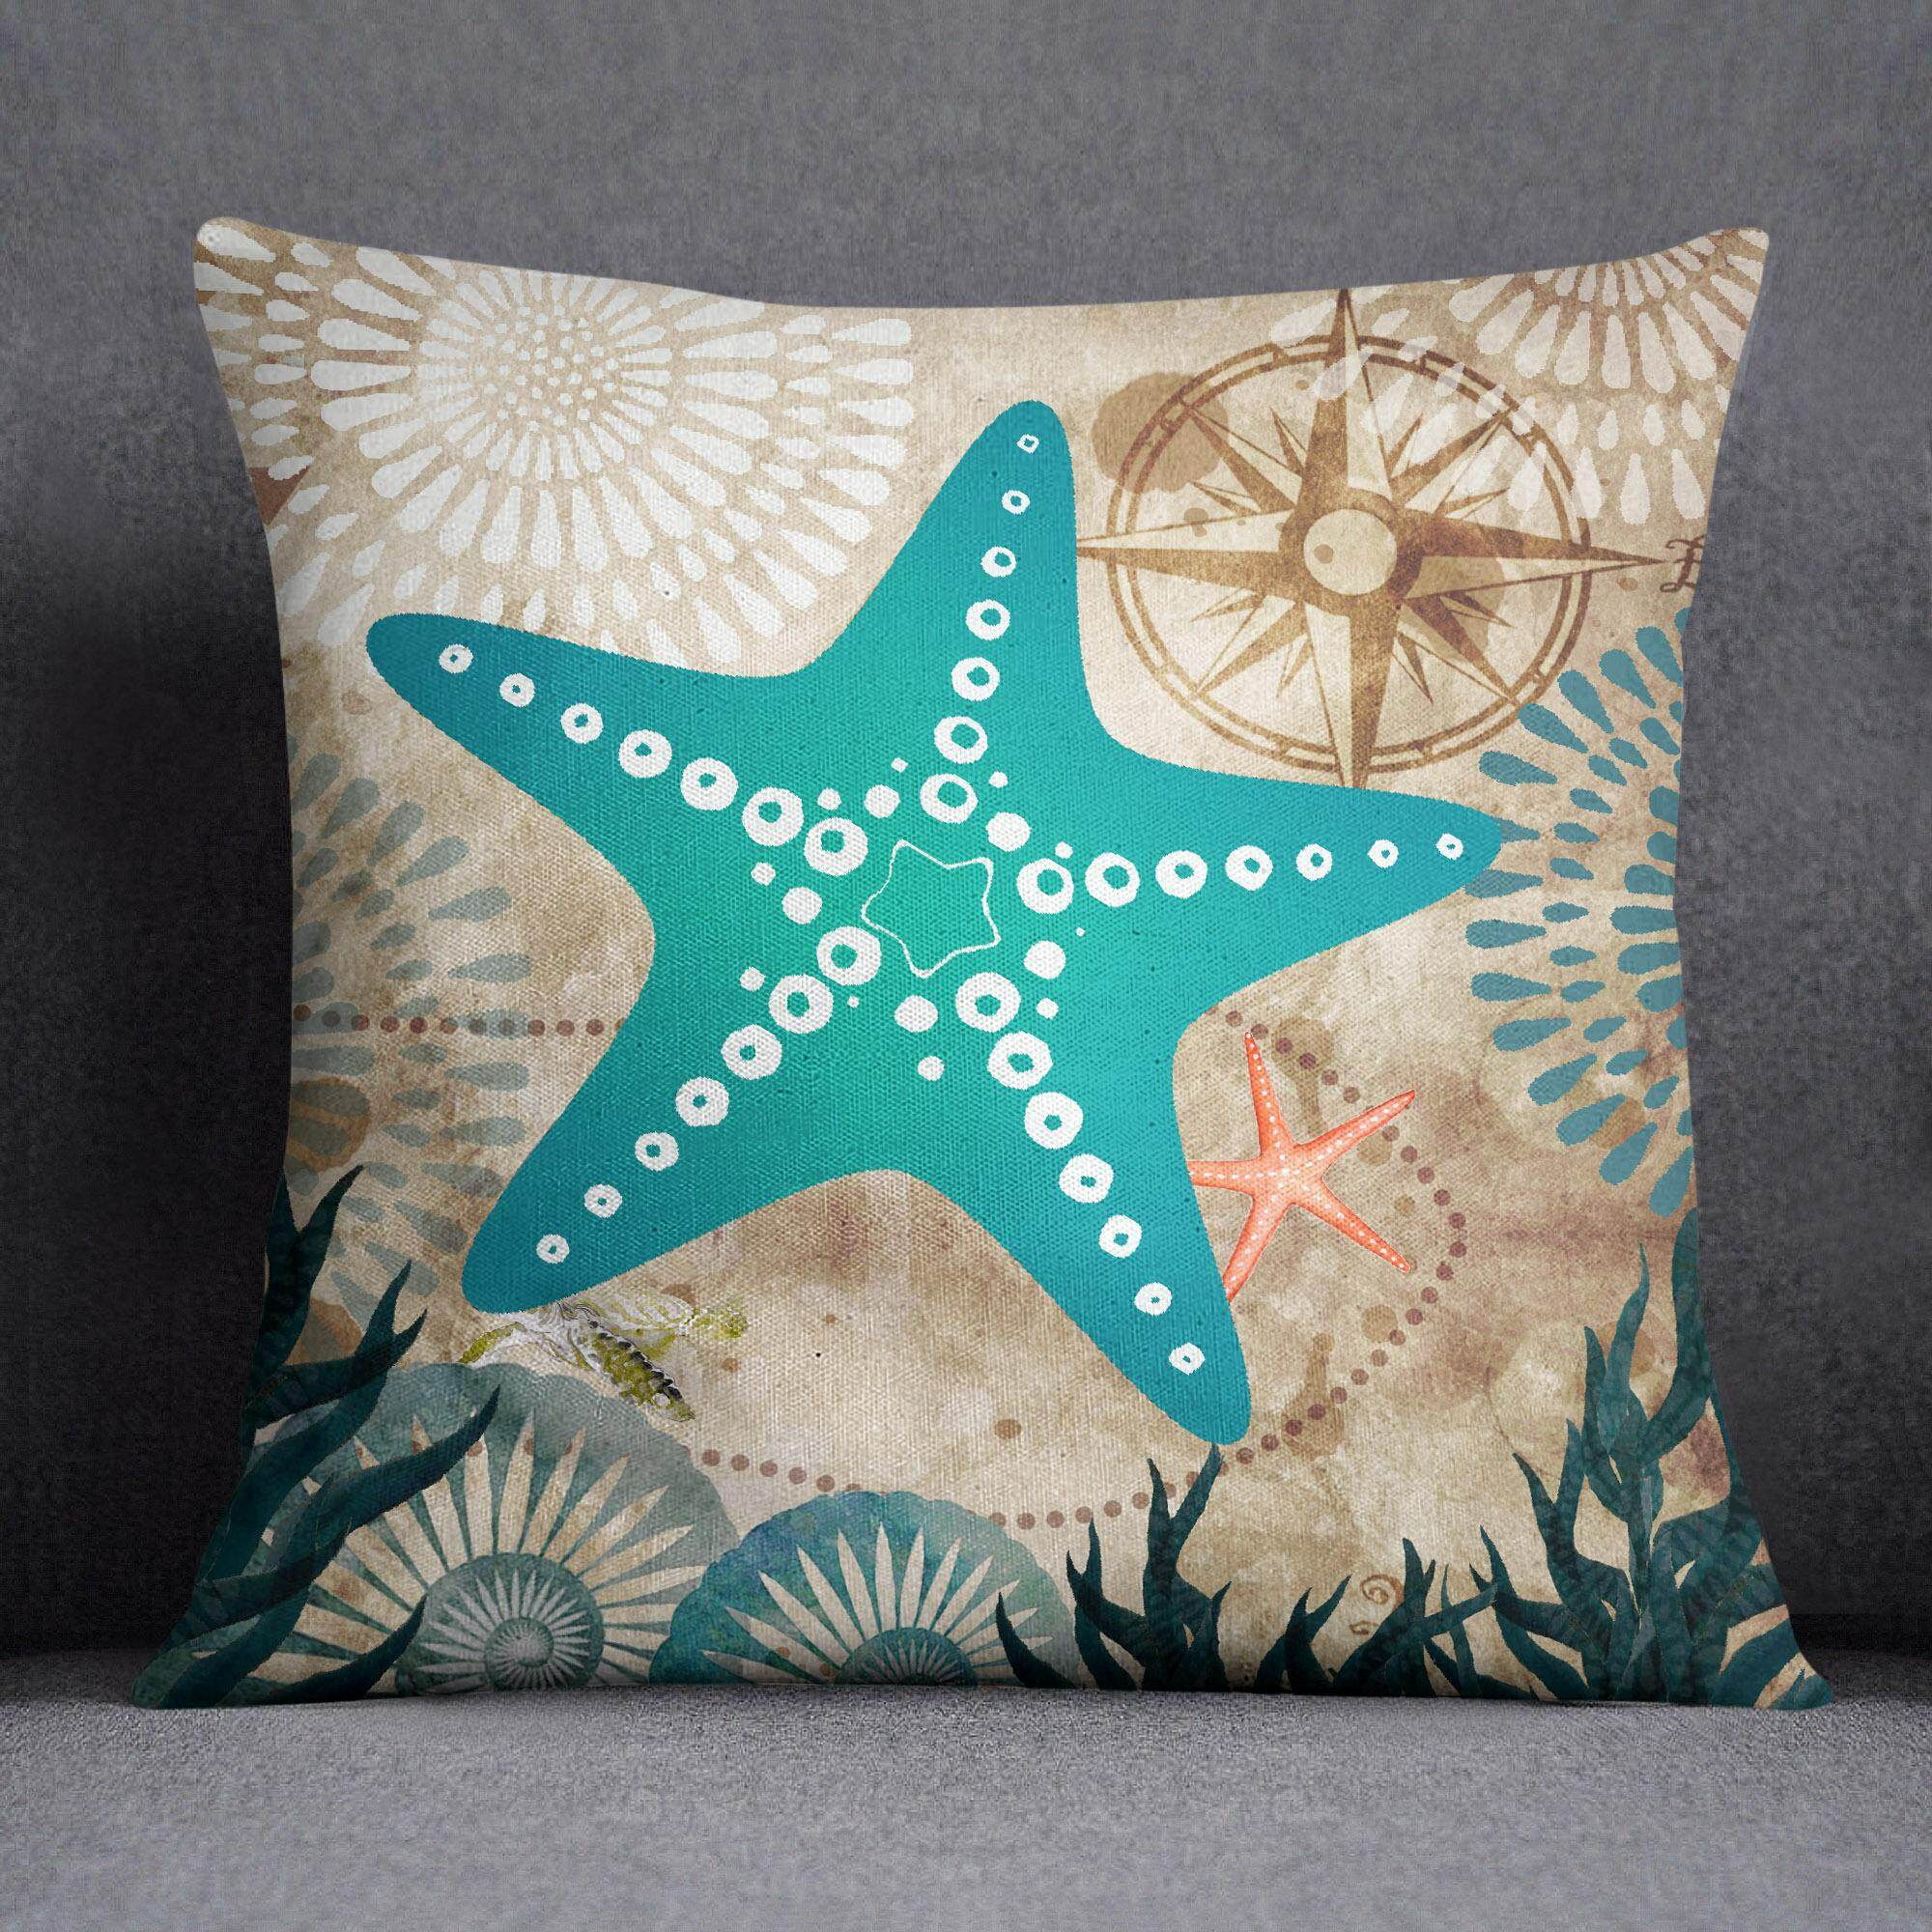 S4sy Mediterranean Style Ocean Star Fish Print Cushion Cover Decorative Square Pillow Throw Case